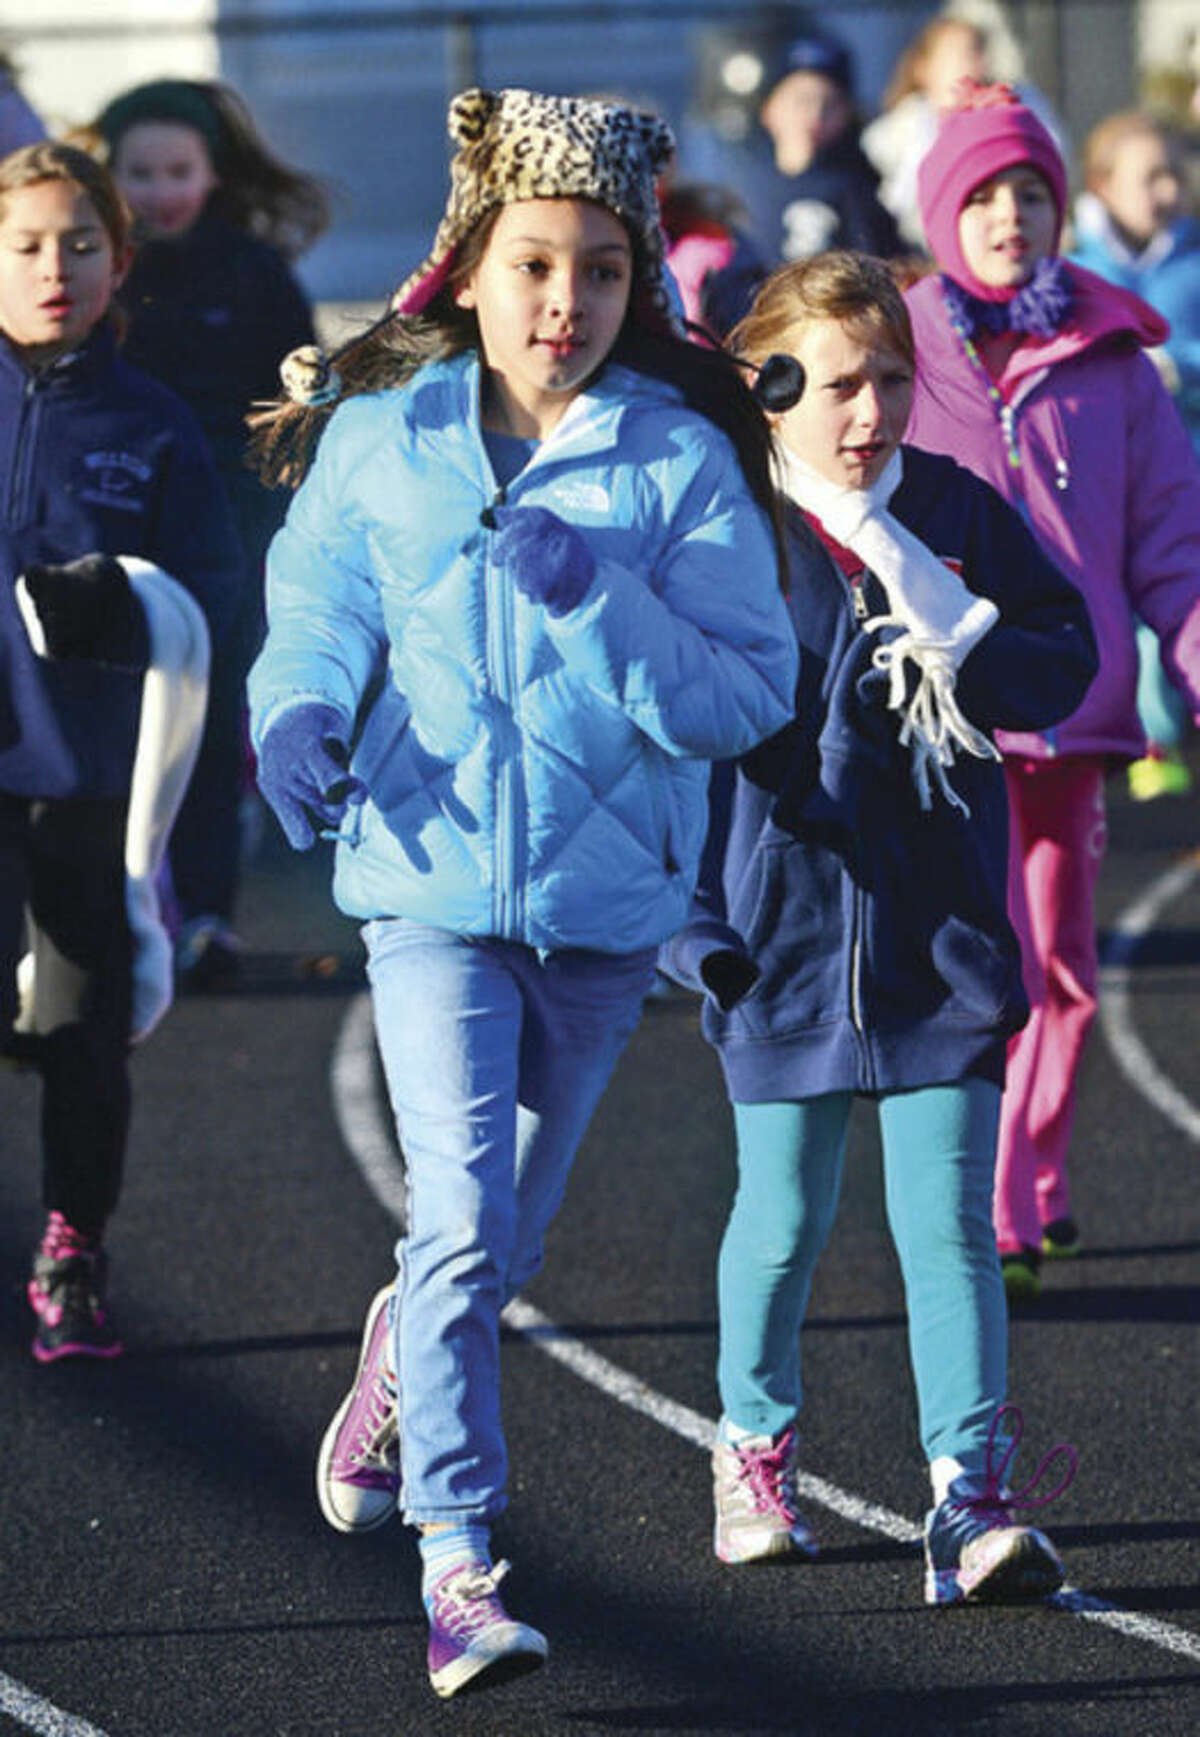 Hour photo / Erik Trautmann Cider Mill Elementary School 3rd grader Sammy Slough, center, and her class participate in the school's annual Turkey Trot run Thursday to raise money for Wilton Social Services.